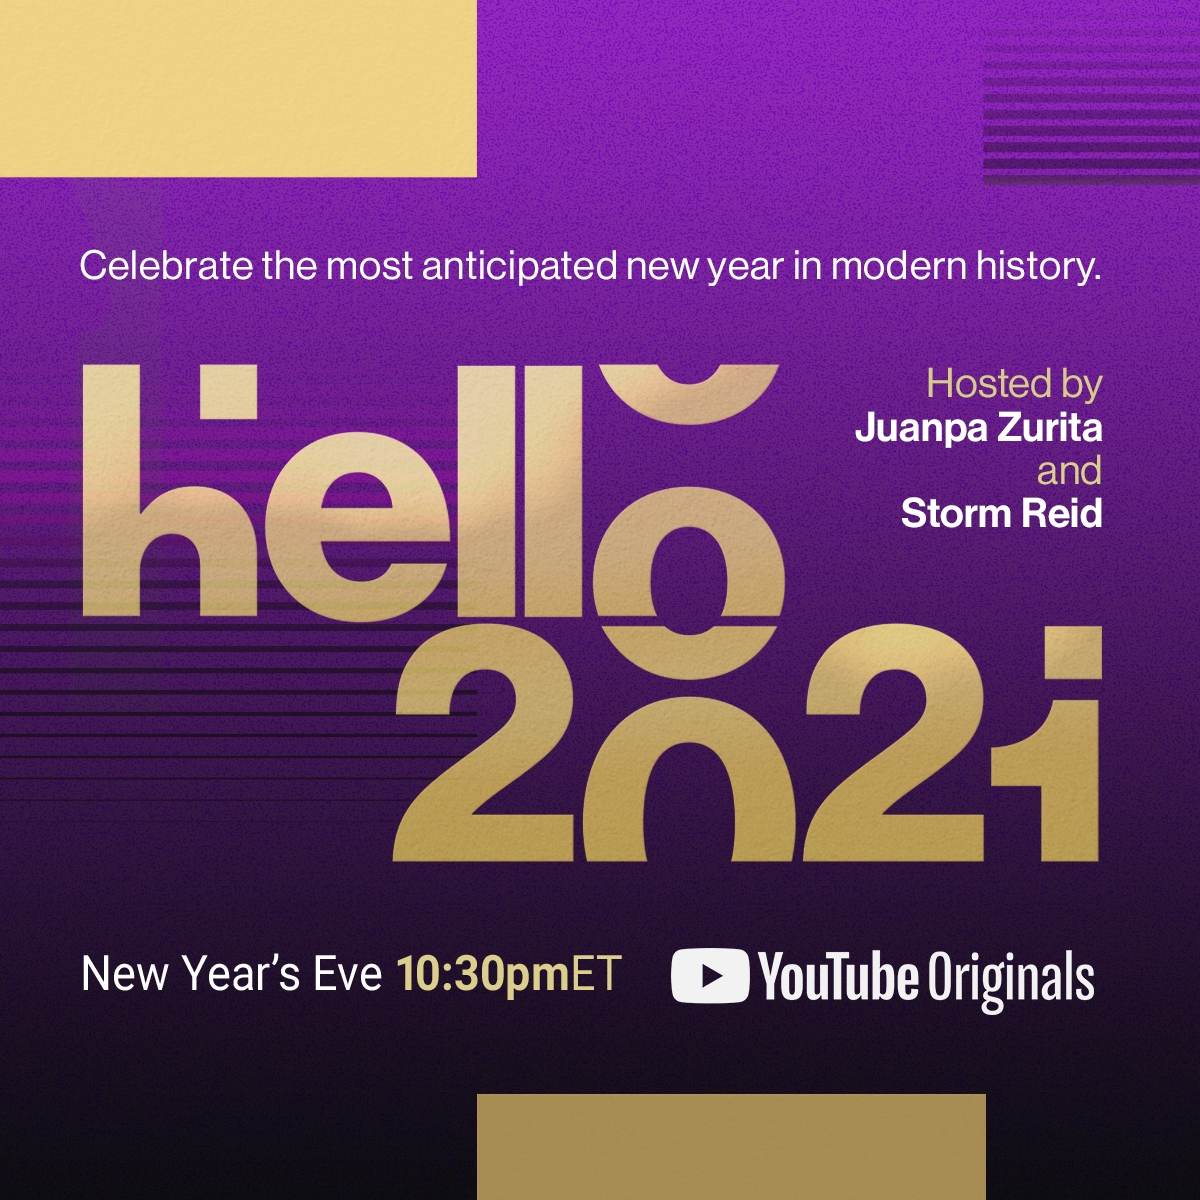 5 things to look forward to in YouTube's global New Year's Eve celebration